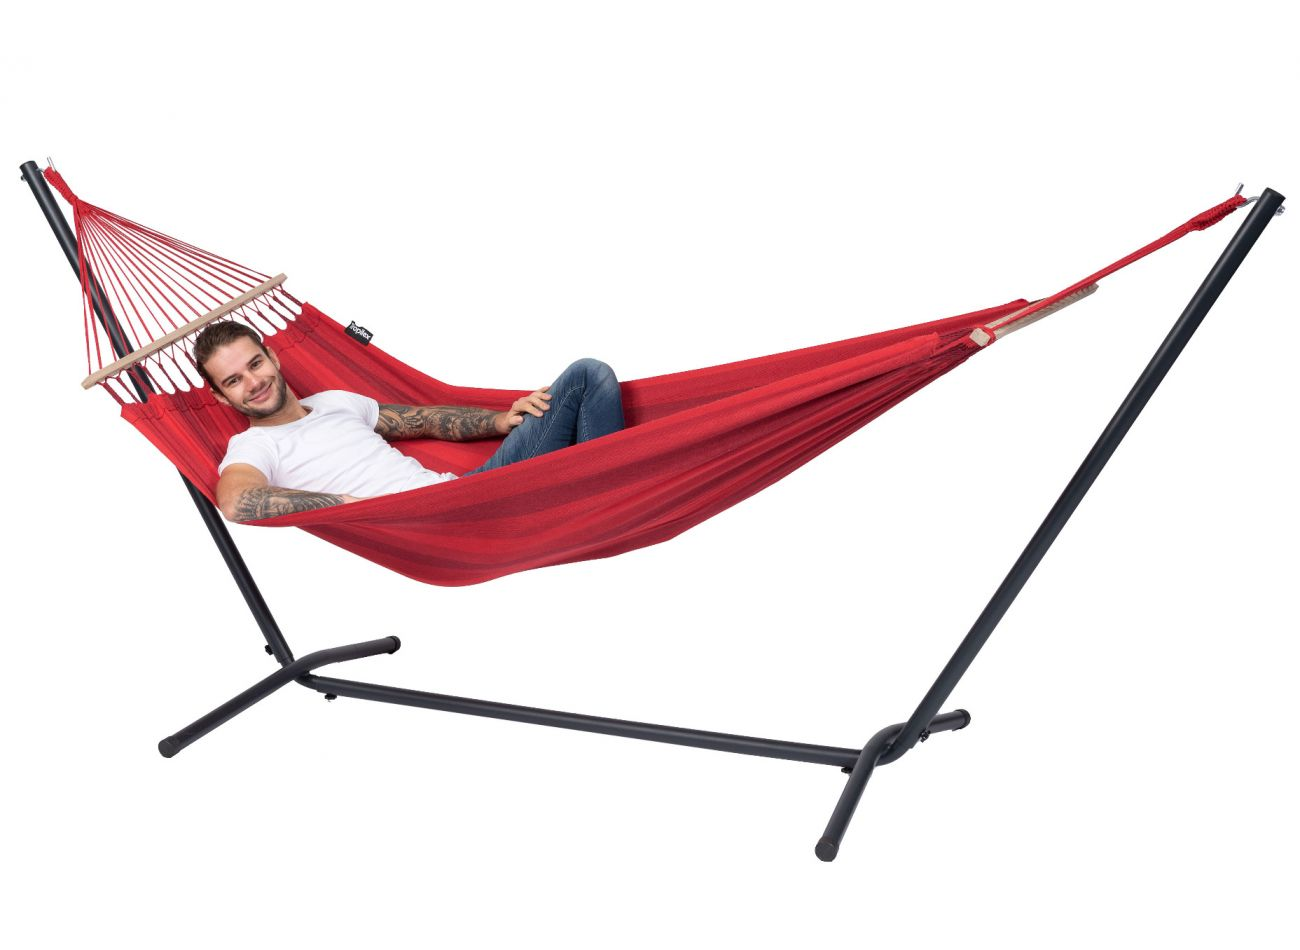 Hängematte 1 Person Relax Red